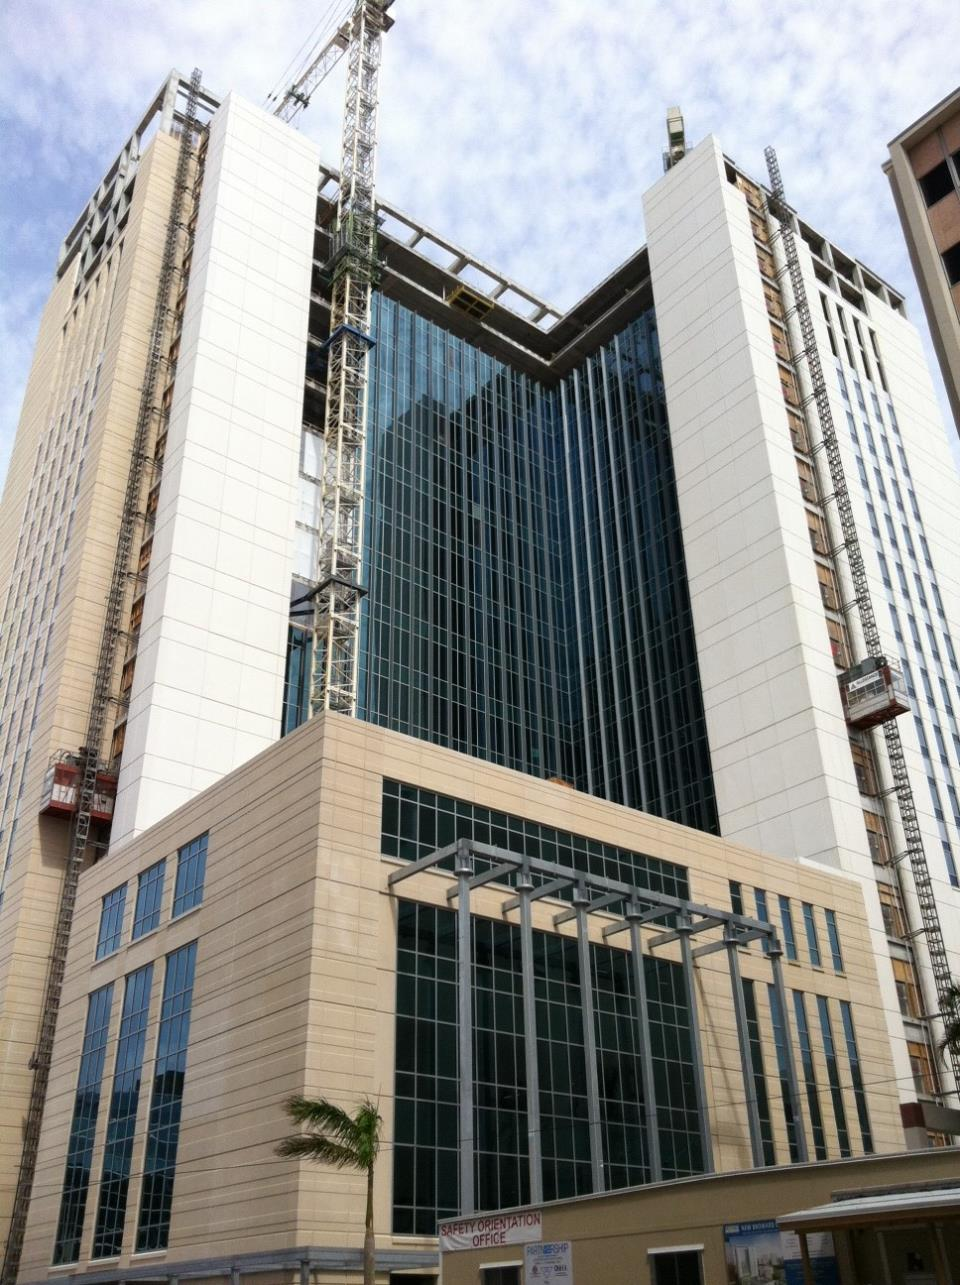 Construction of the Broward County Courthouse to LEED standards